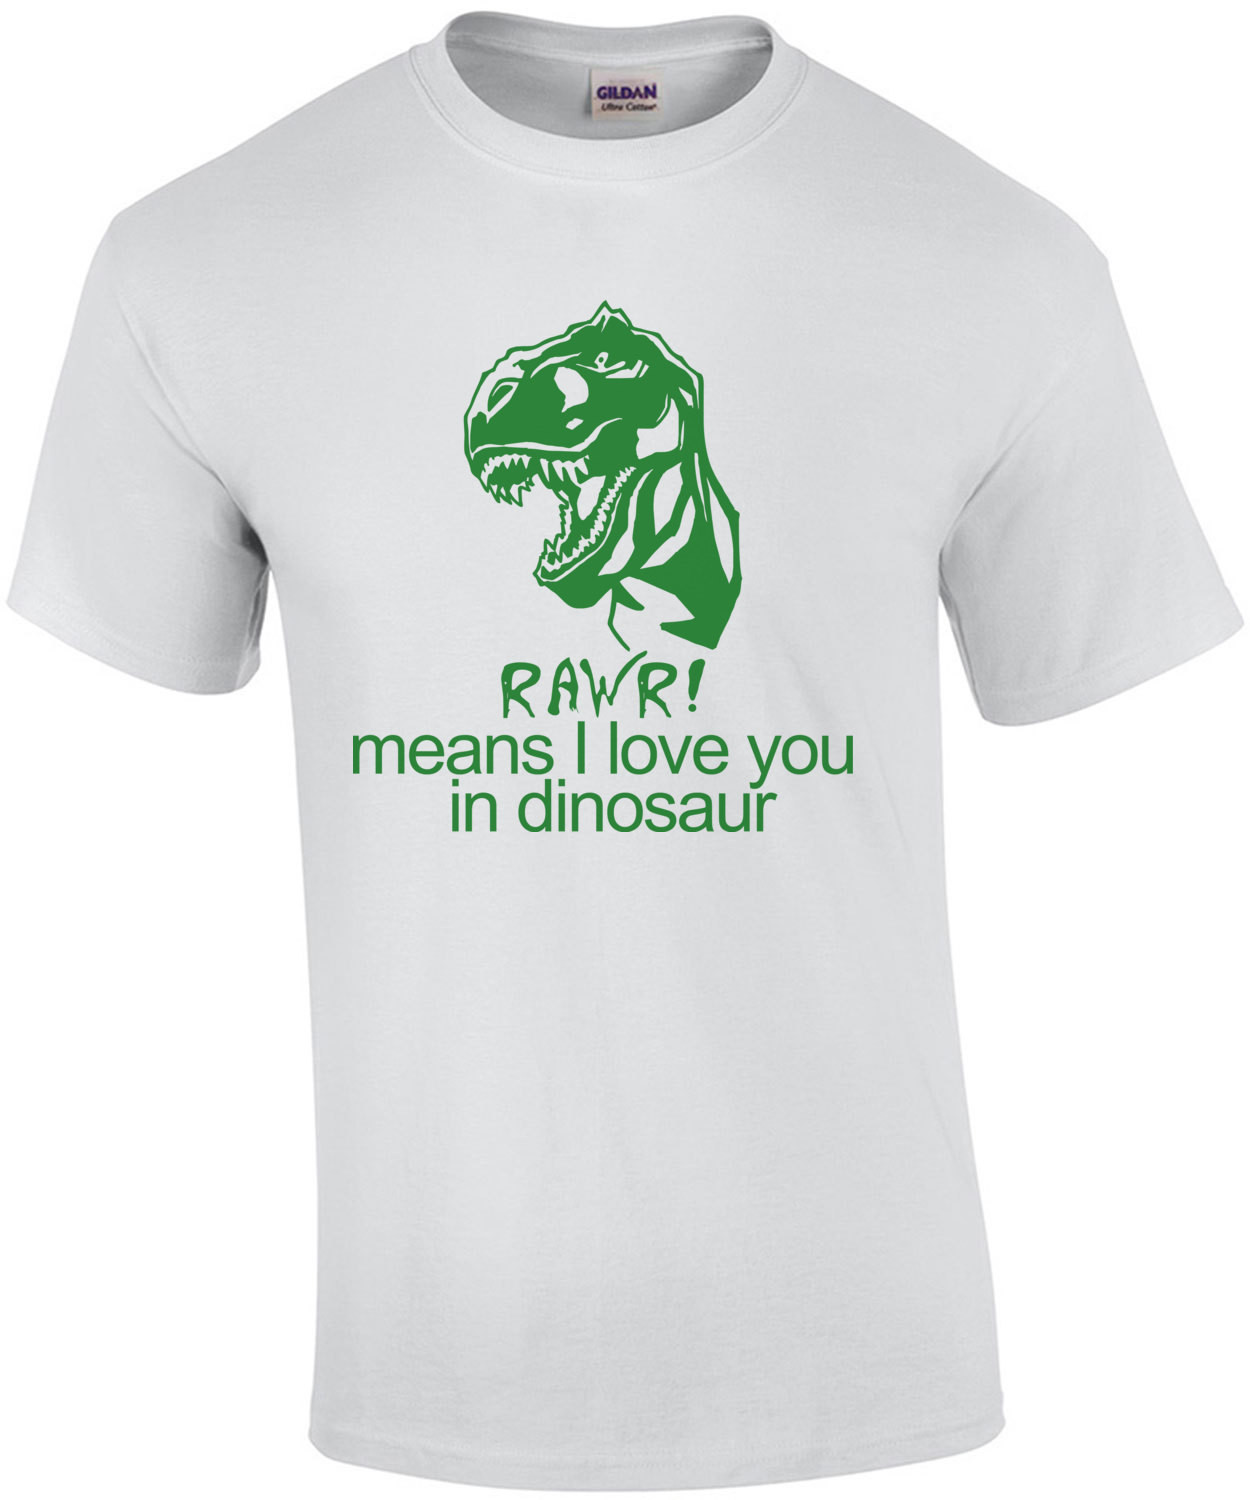 Rawr! Means I Love You In Dinosaur Kids Shirt